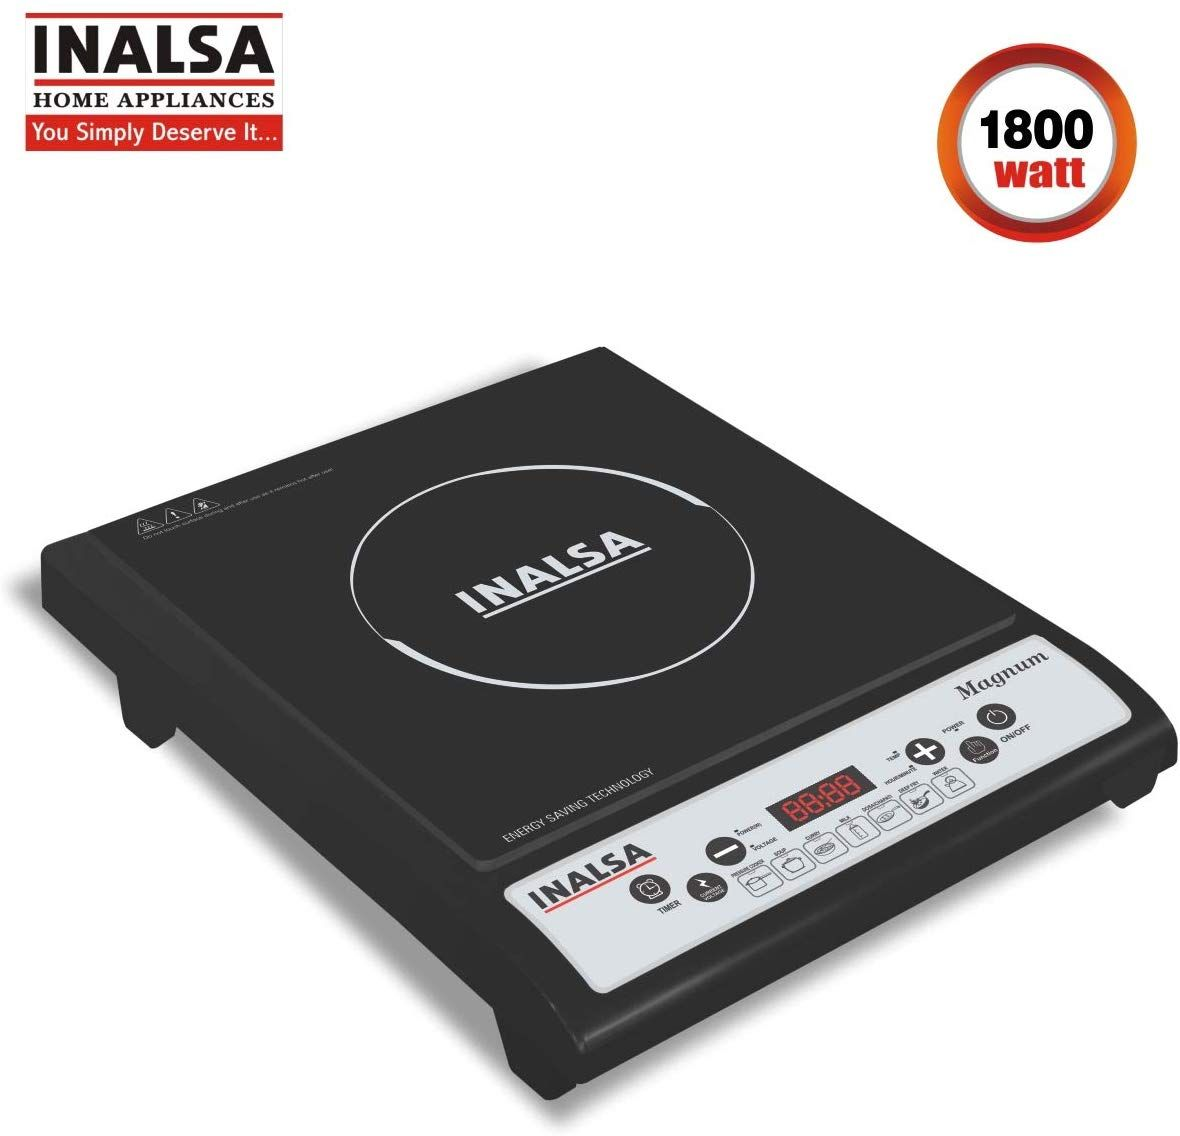 Inalsa Magnum 1800-Watt Induction Cooktop